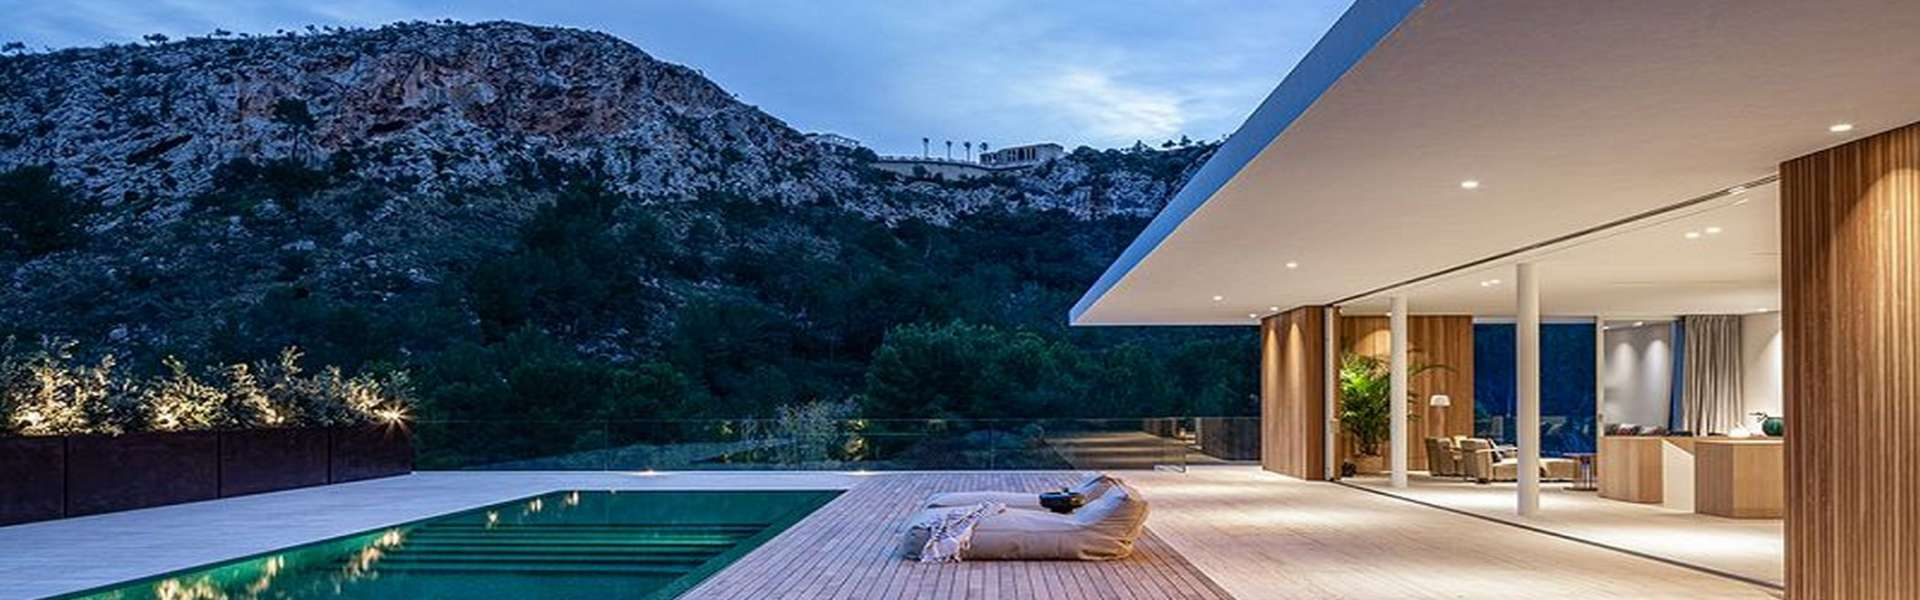 Palma/Son Vida - Luxury Villa with stunning views